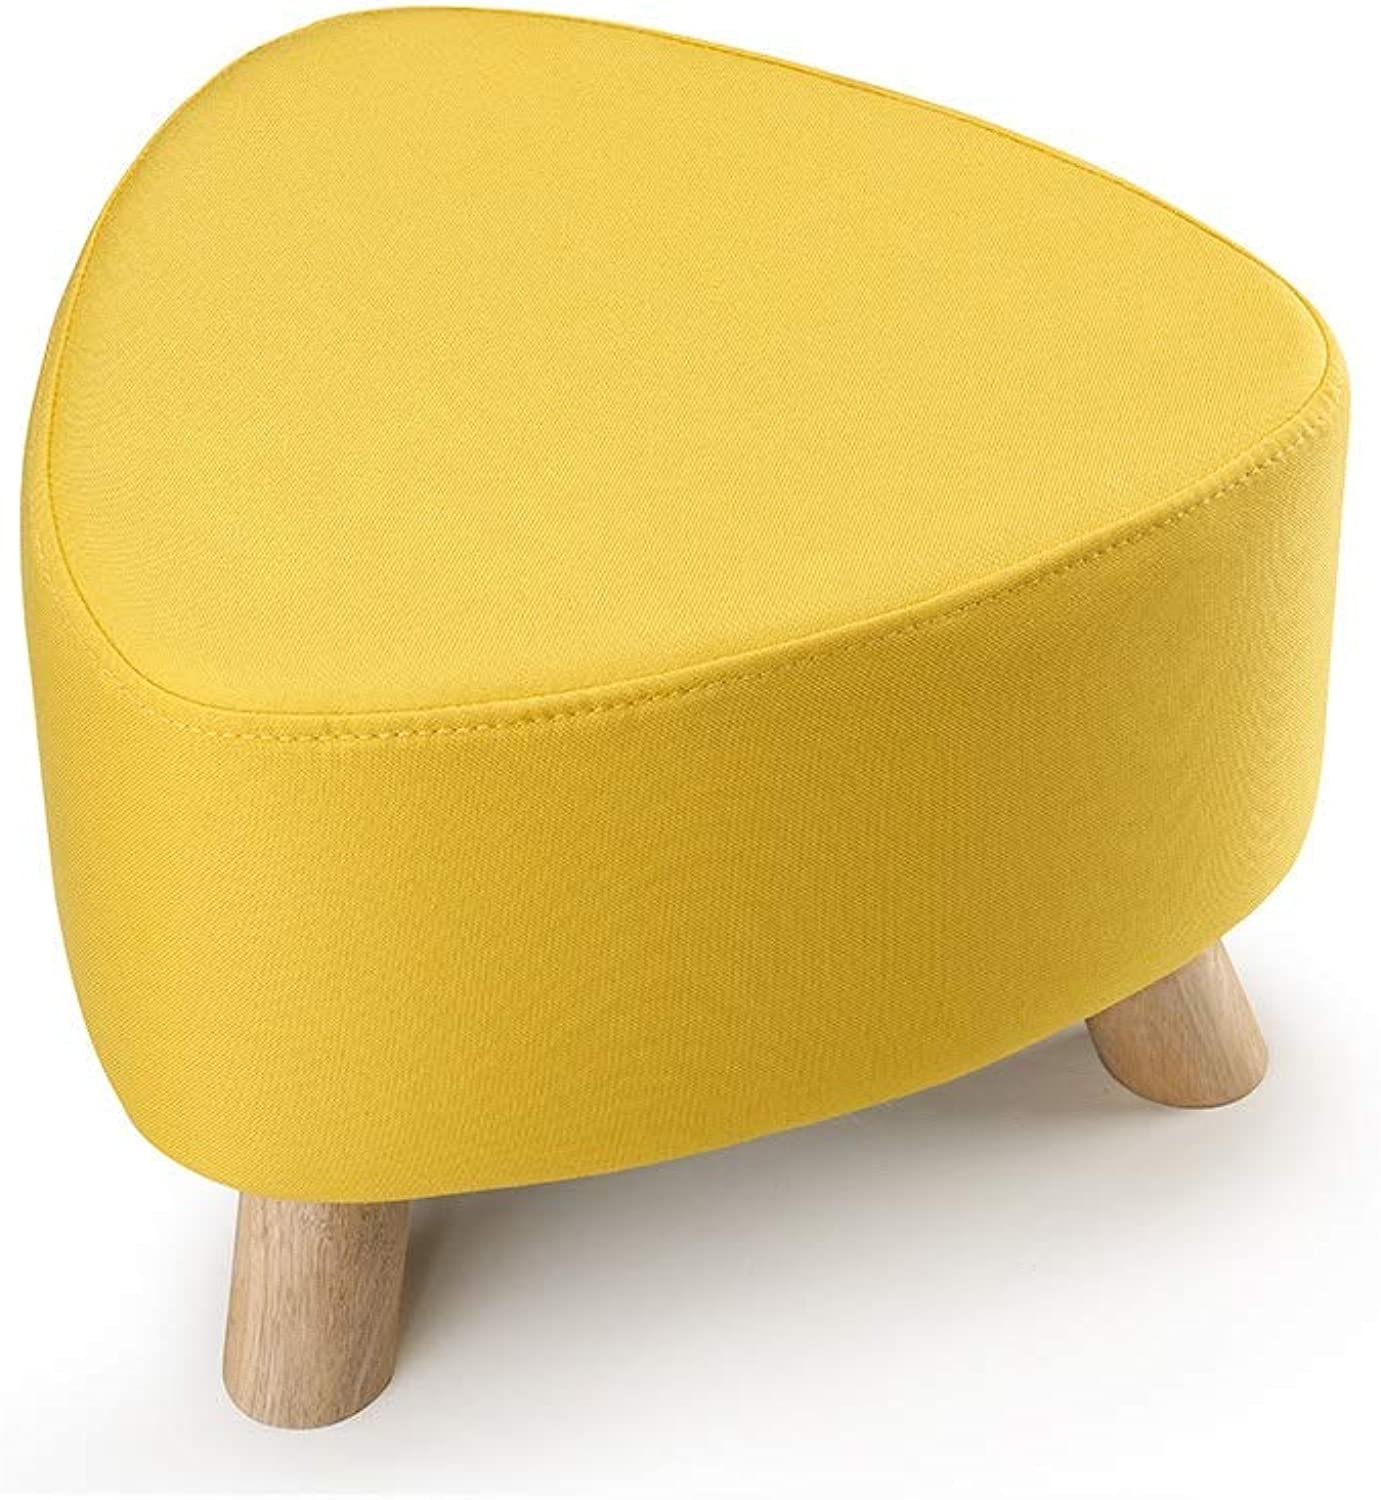 Footstool Upholstered Triangle Stool Chair Solid Wood Three-Legged Support Removable Yellow Linen Cover Sofa Bench (color   Yellow)